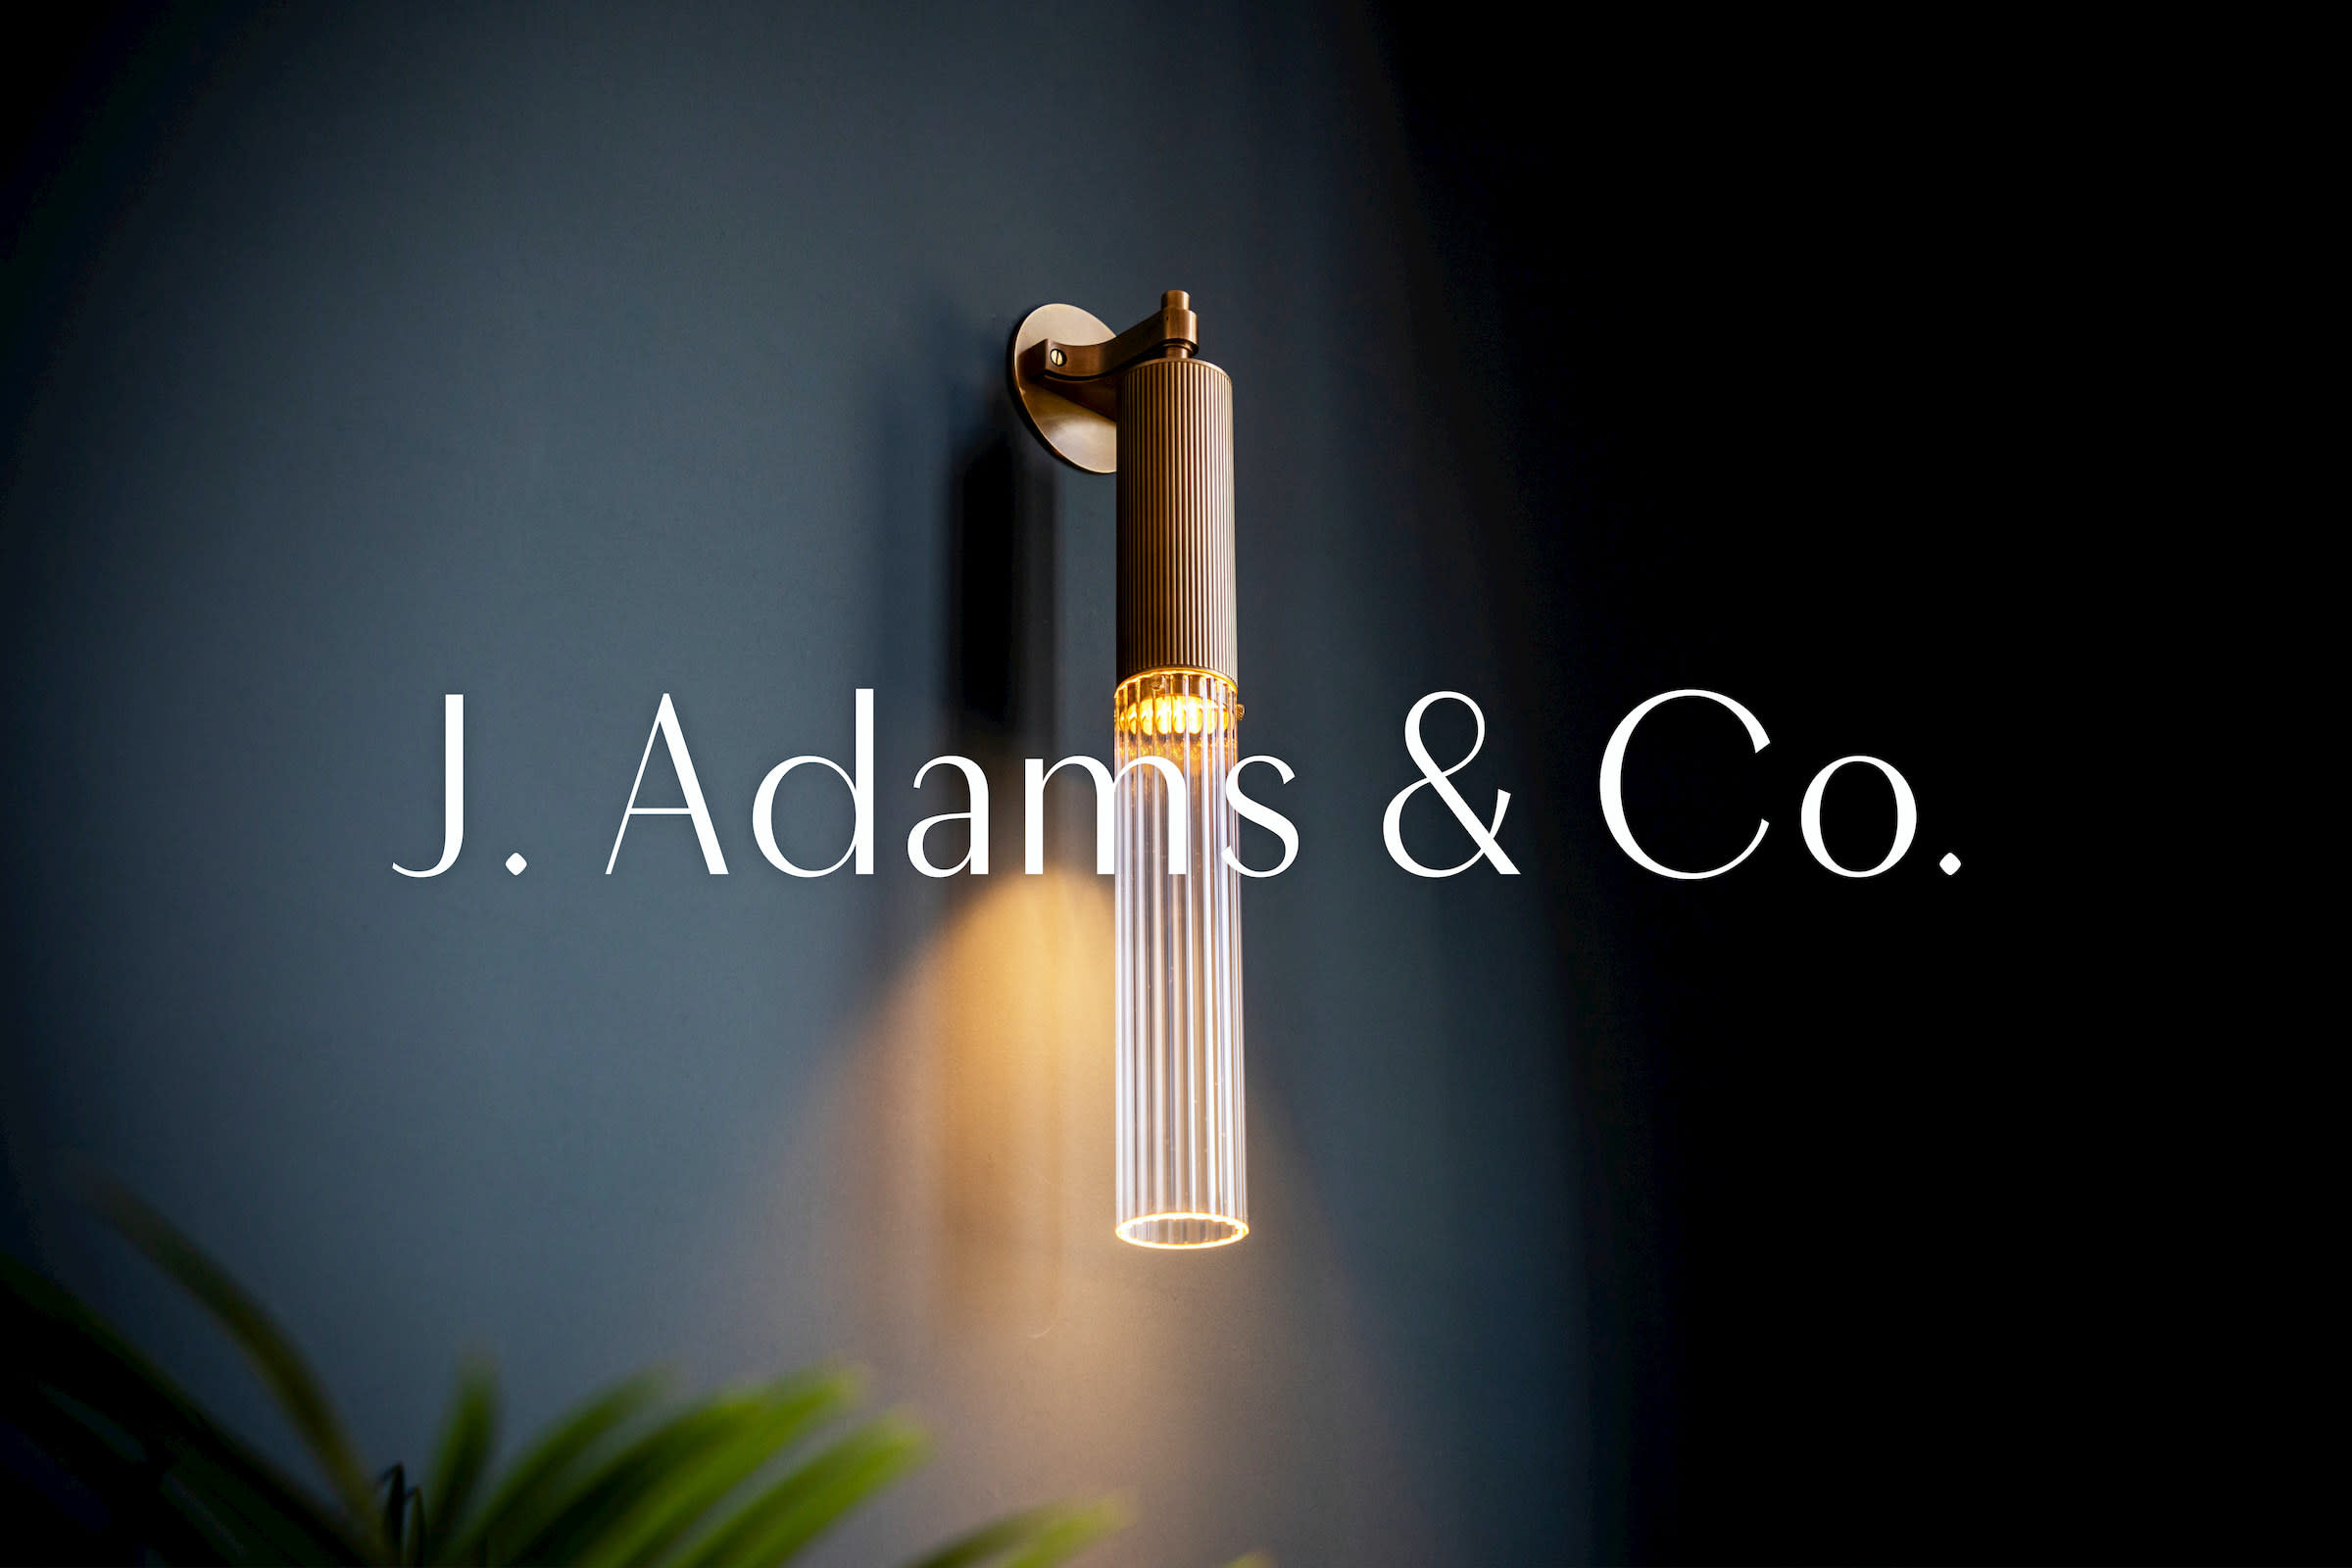 saul studio — J. Adams & Co.